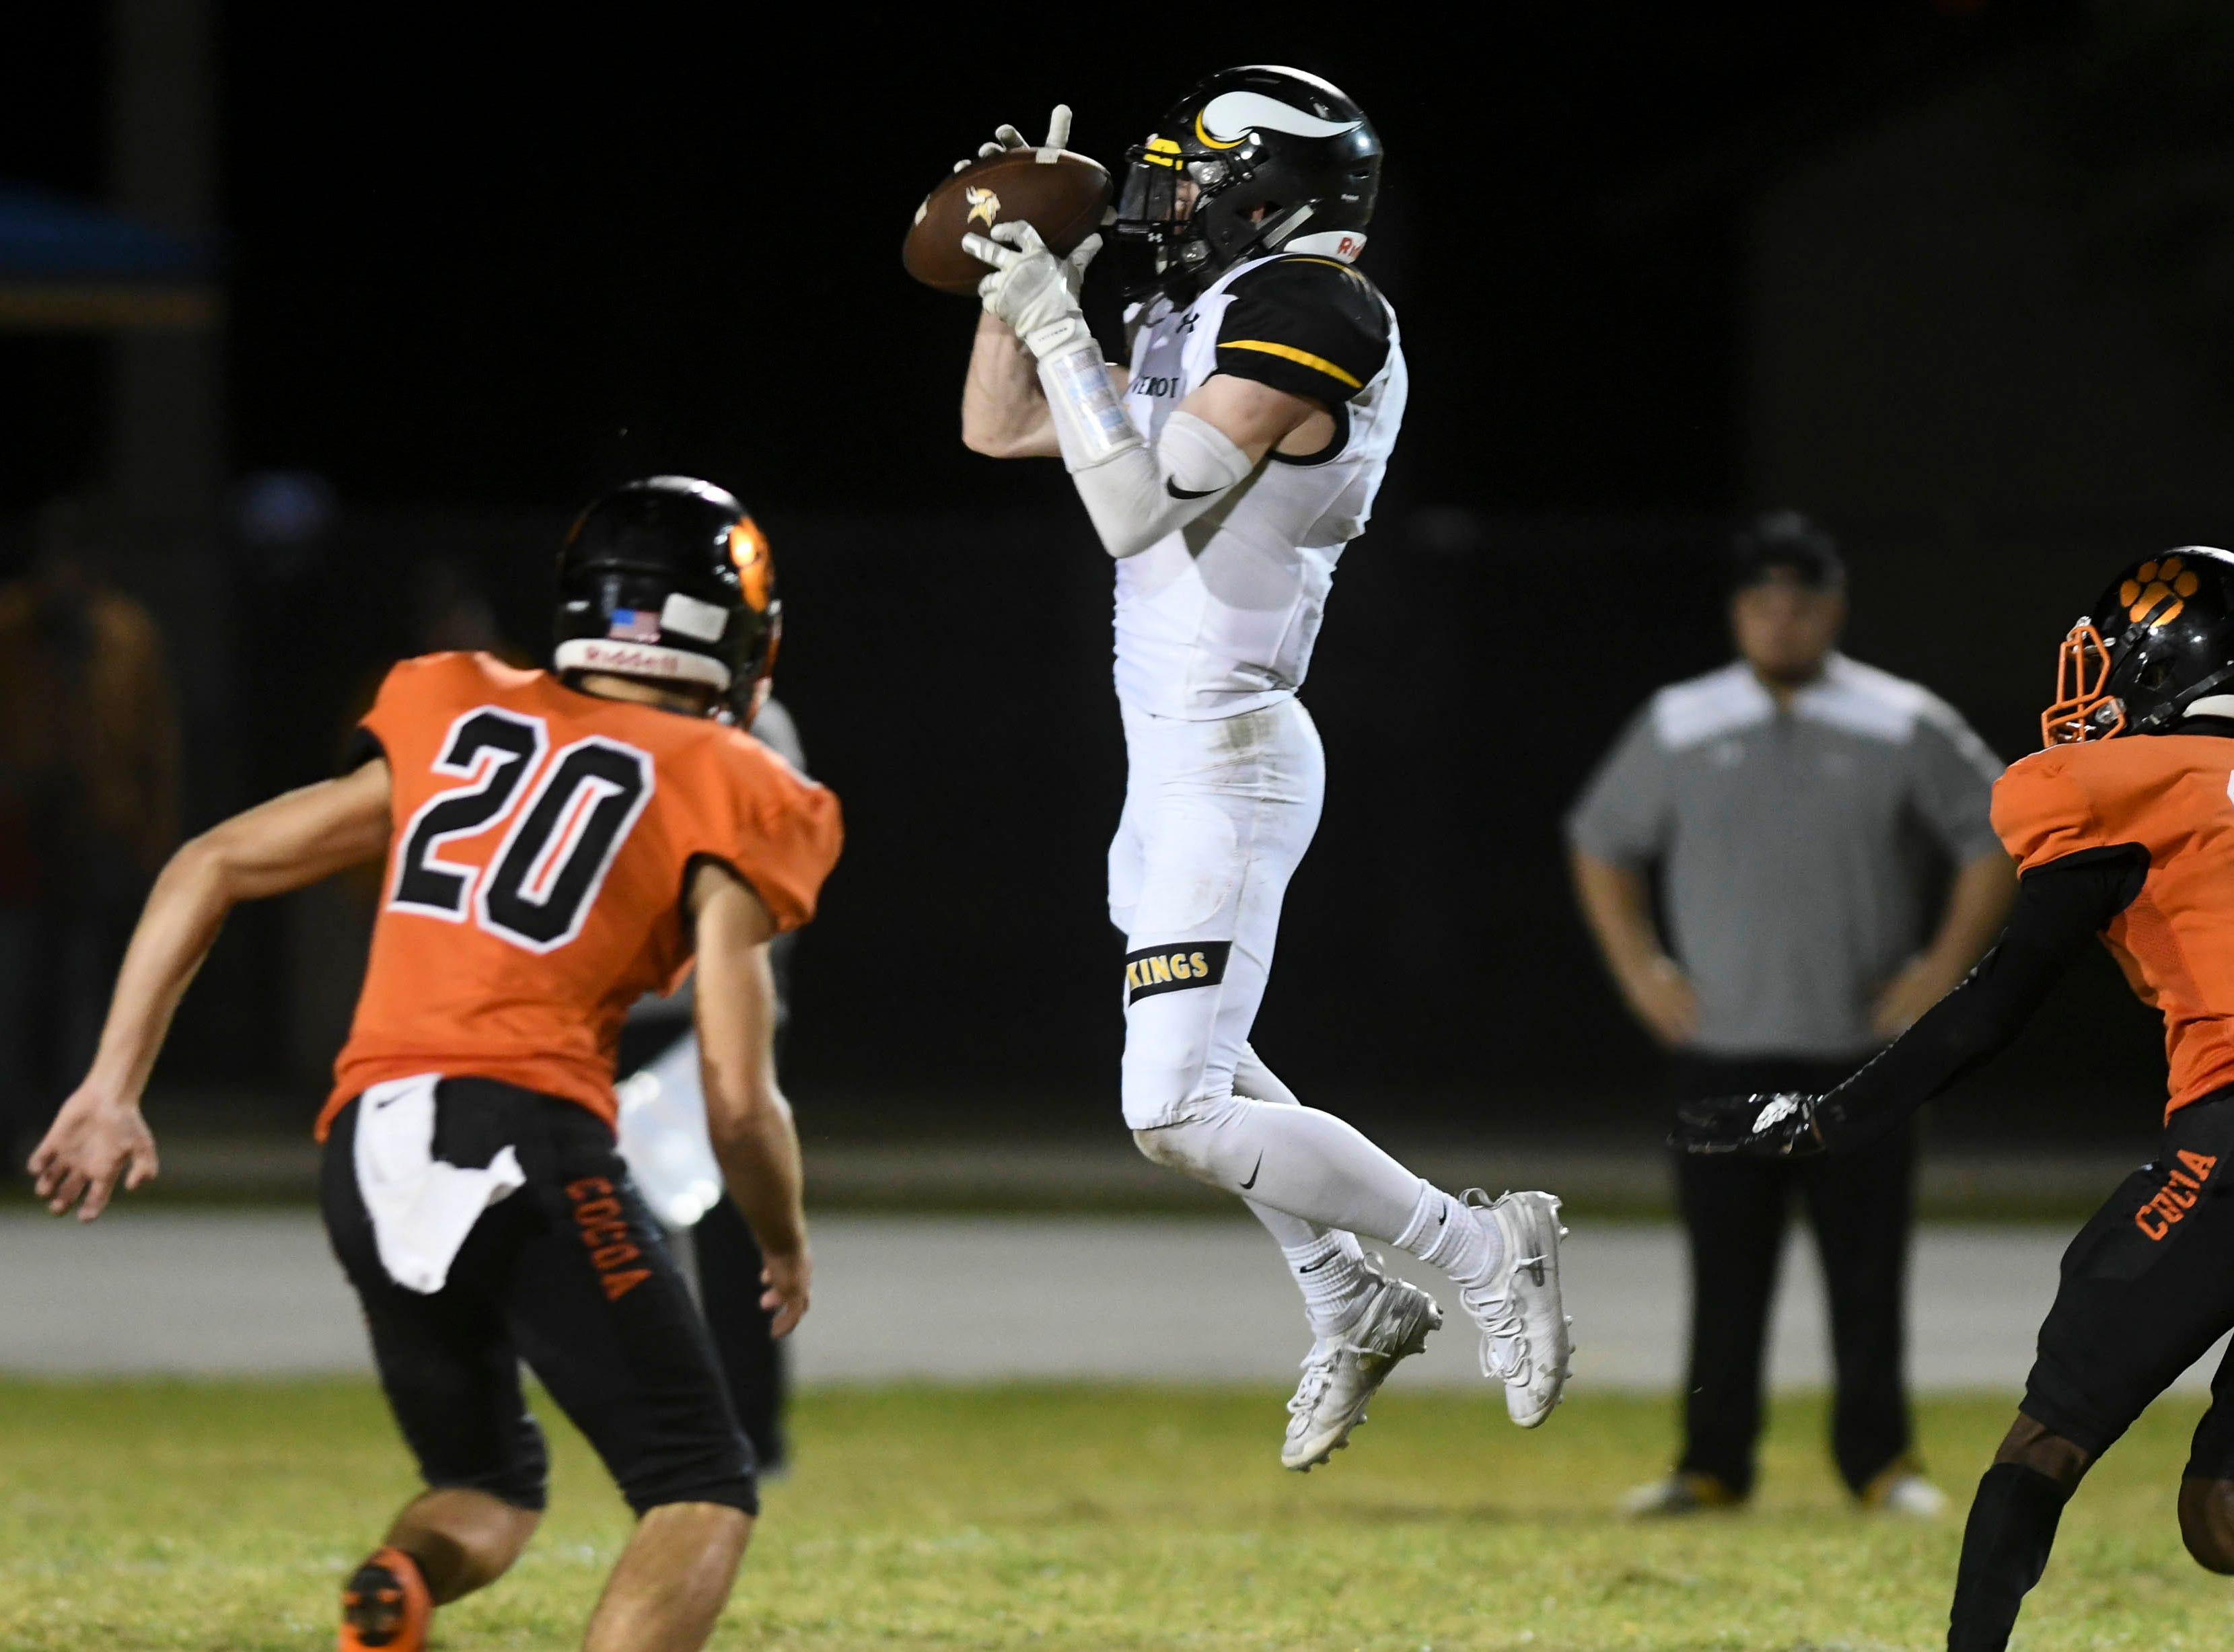 Allen Pierce of Bishop Verot catches a pass during Friday's game against Cocoa.